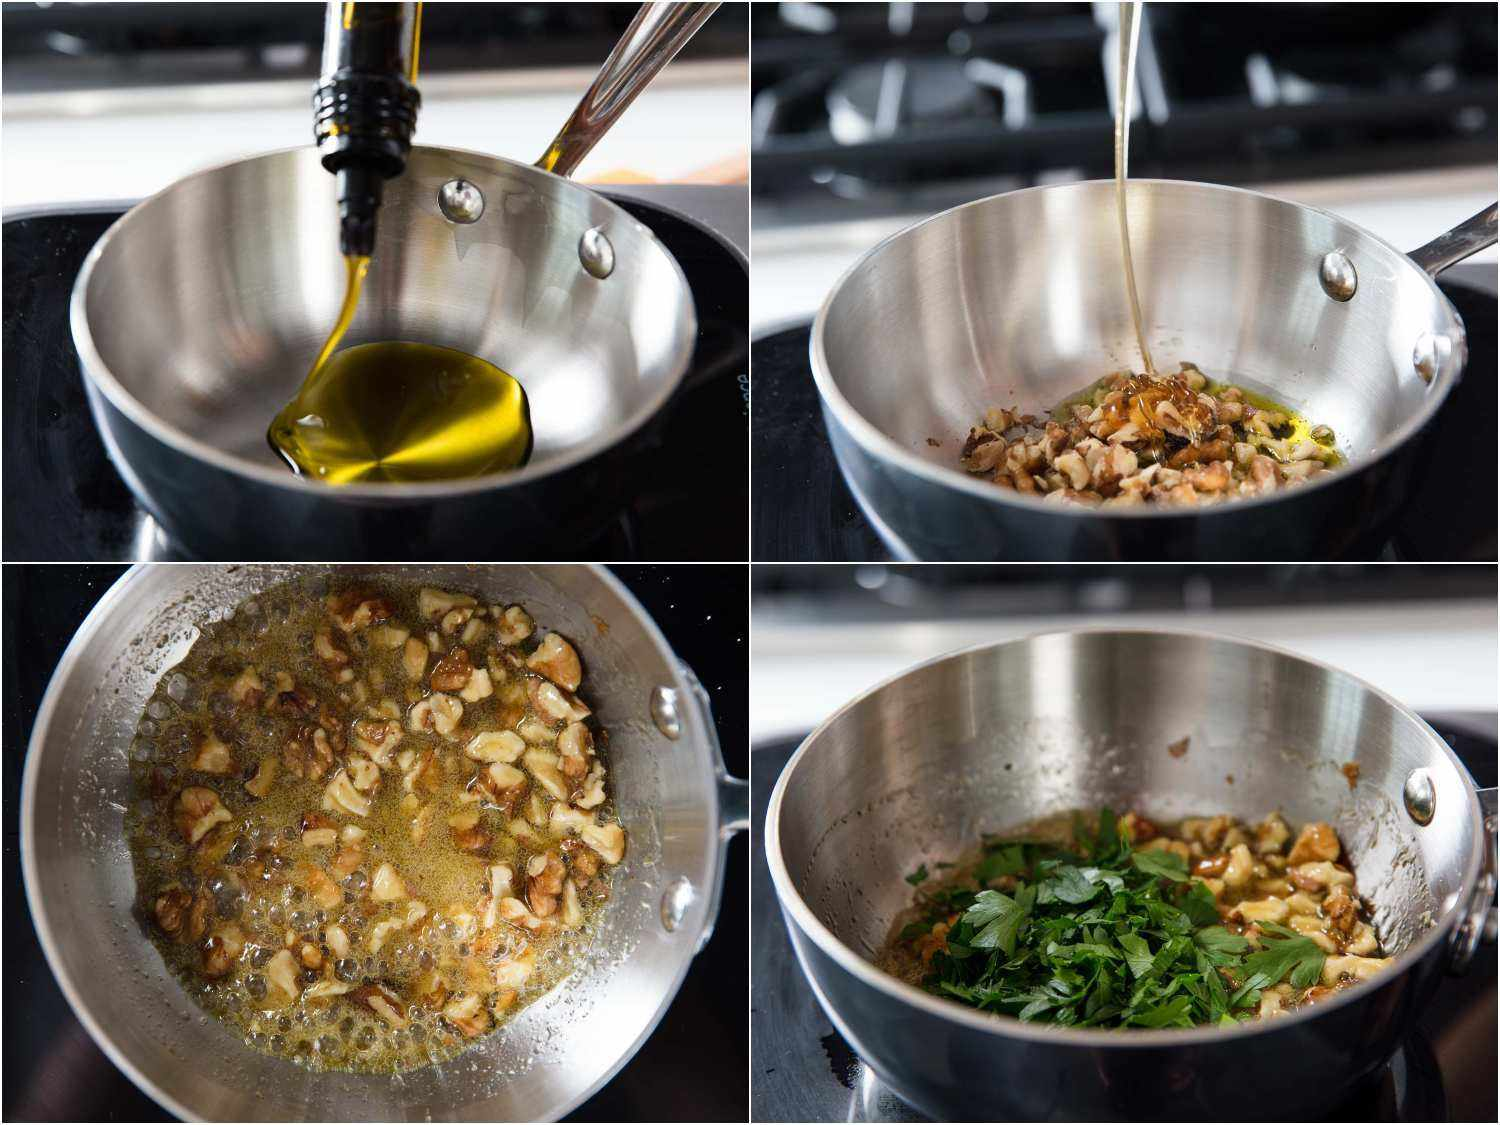 Toasting walnuts in oil, adding honey, lemon, and parsley.